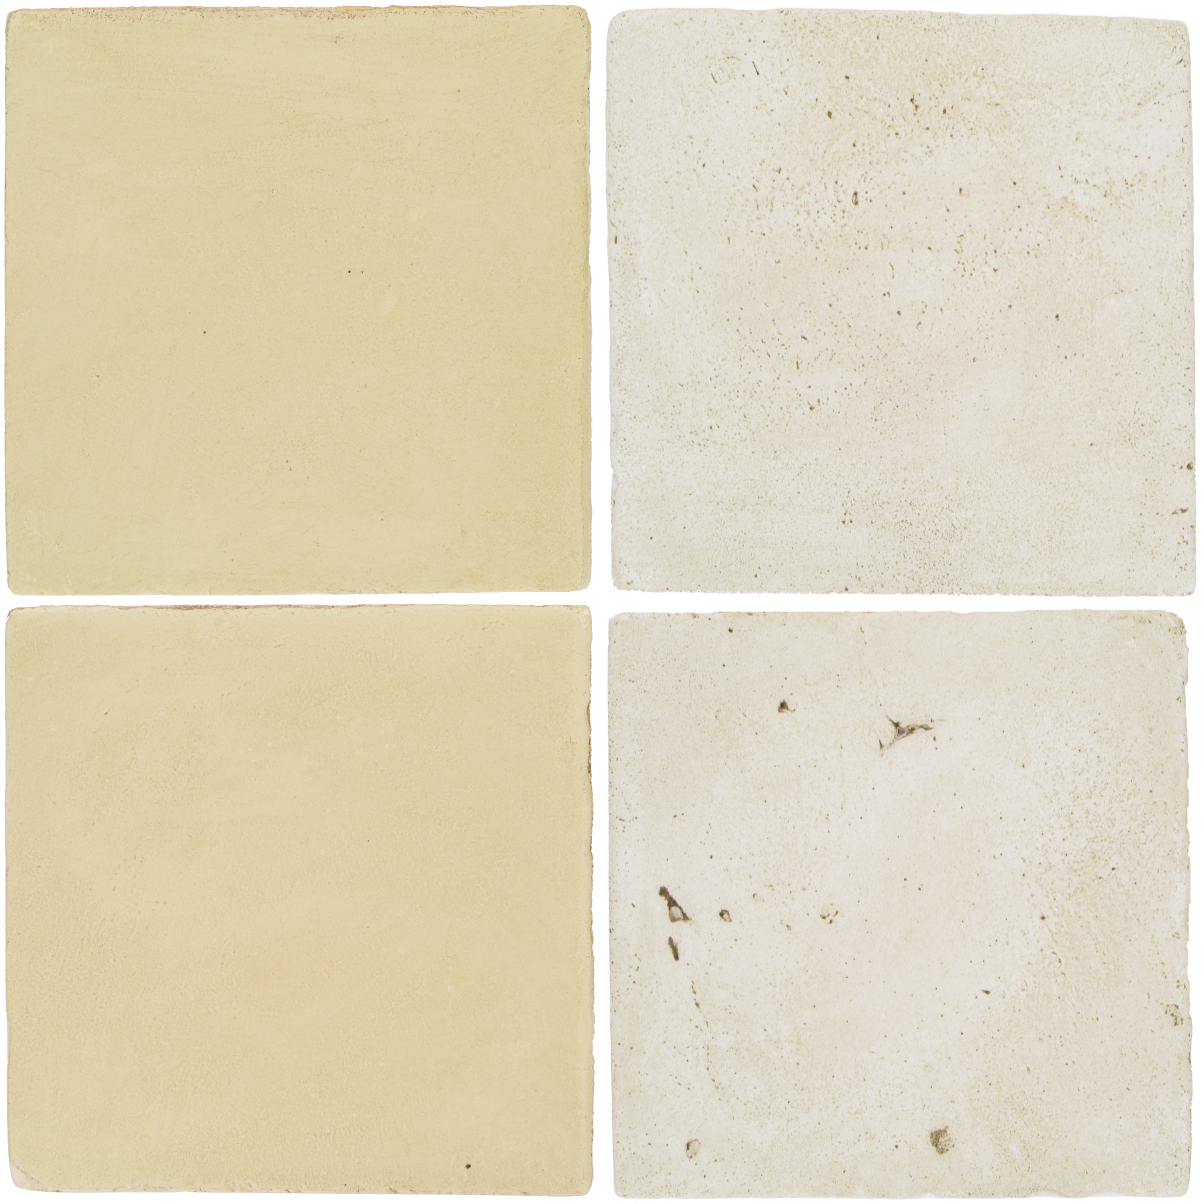 Pedralbes Antique Terracotta  2 Color Combinations  OHS-PGPW Pergamino White + VTG-PGAW Antique White